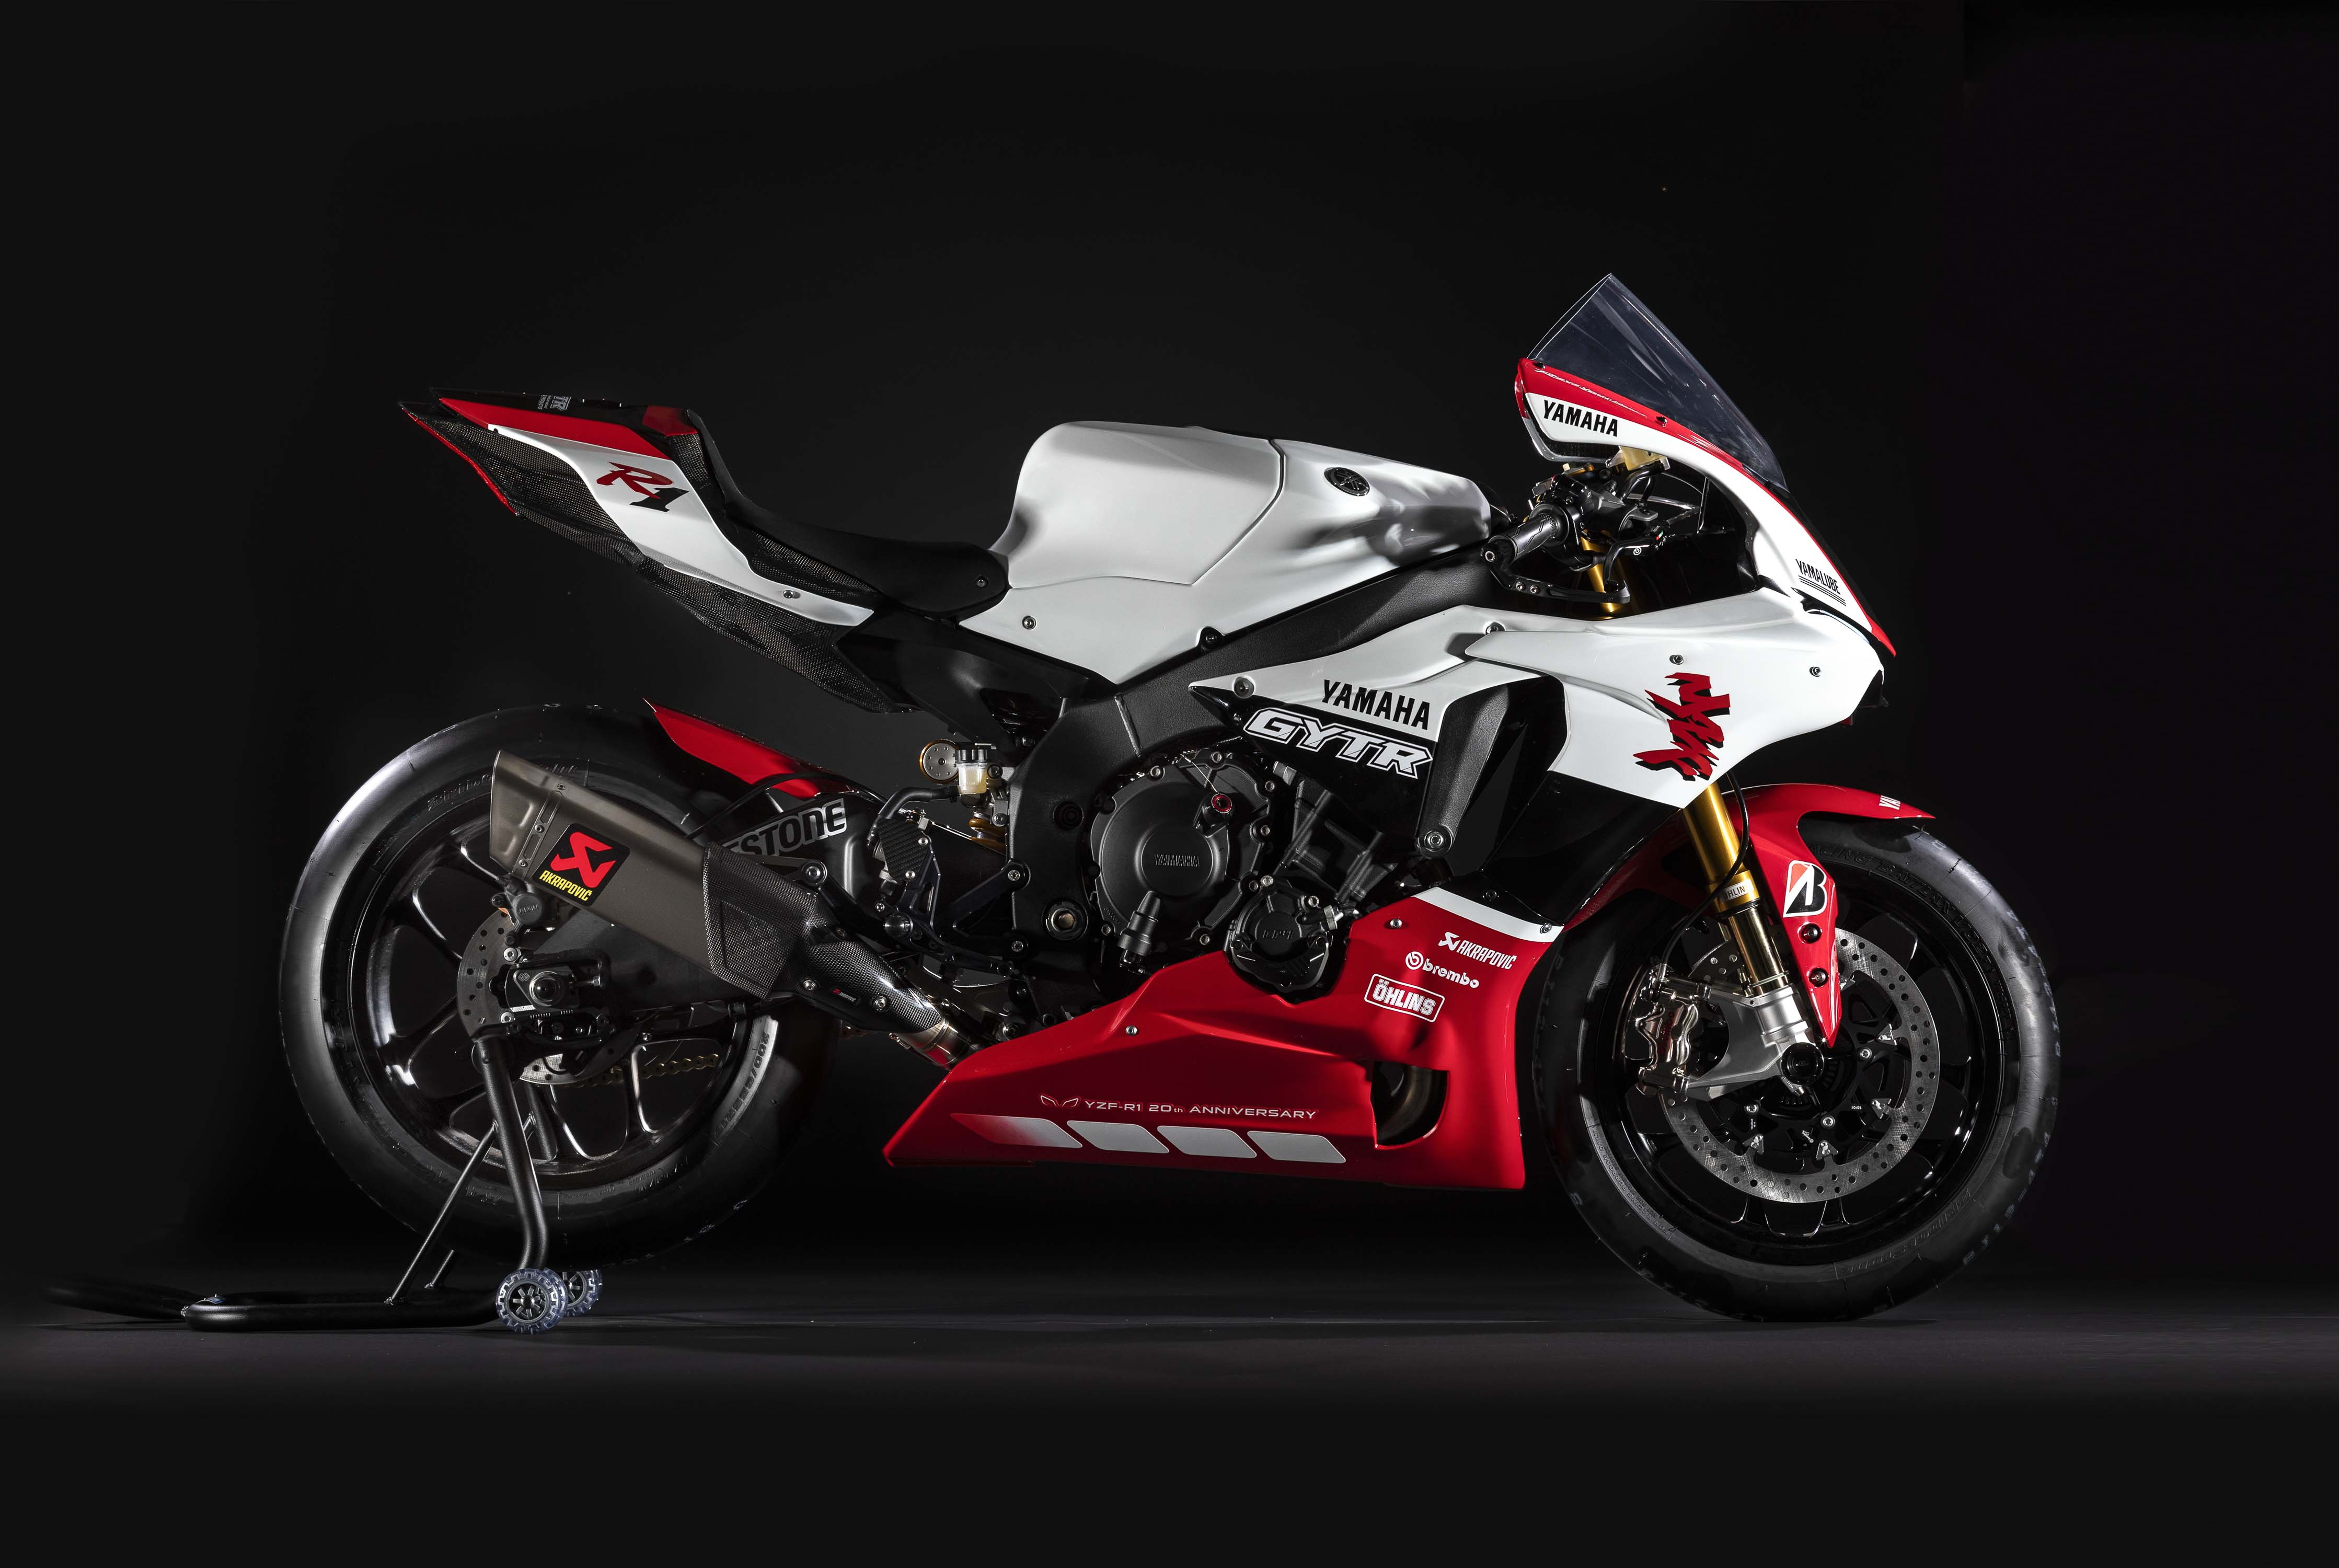 The Yamaha Yzf R1 Gytr Superbike Celebrates 20 Years Of The R1 So